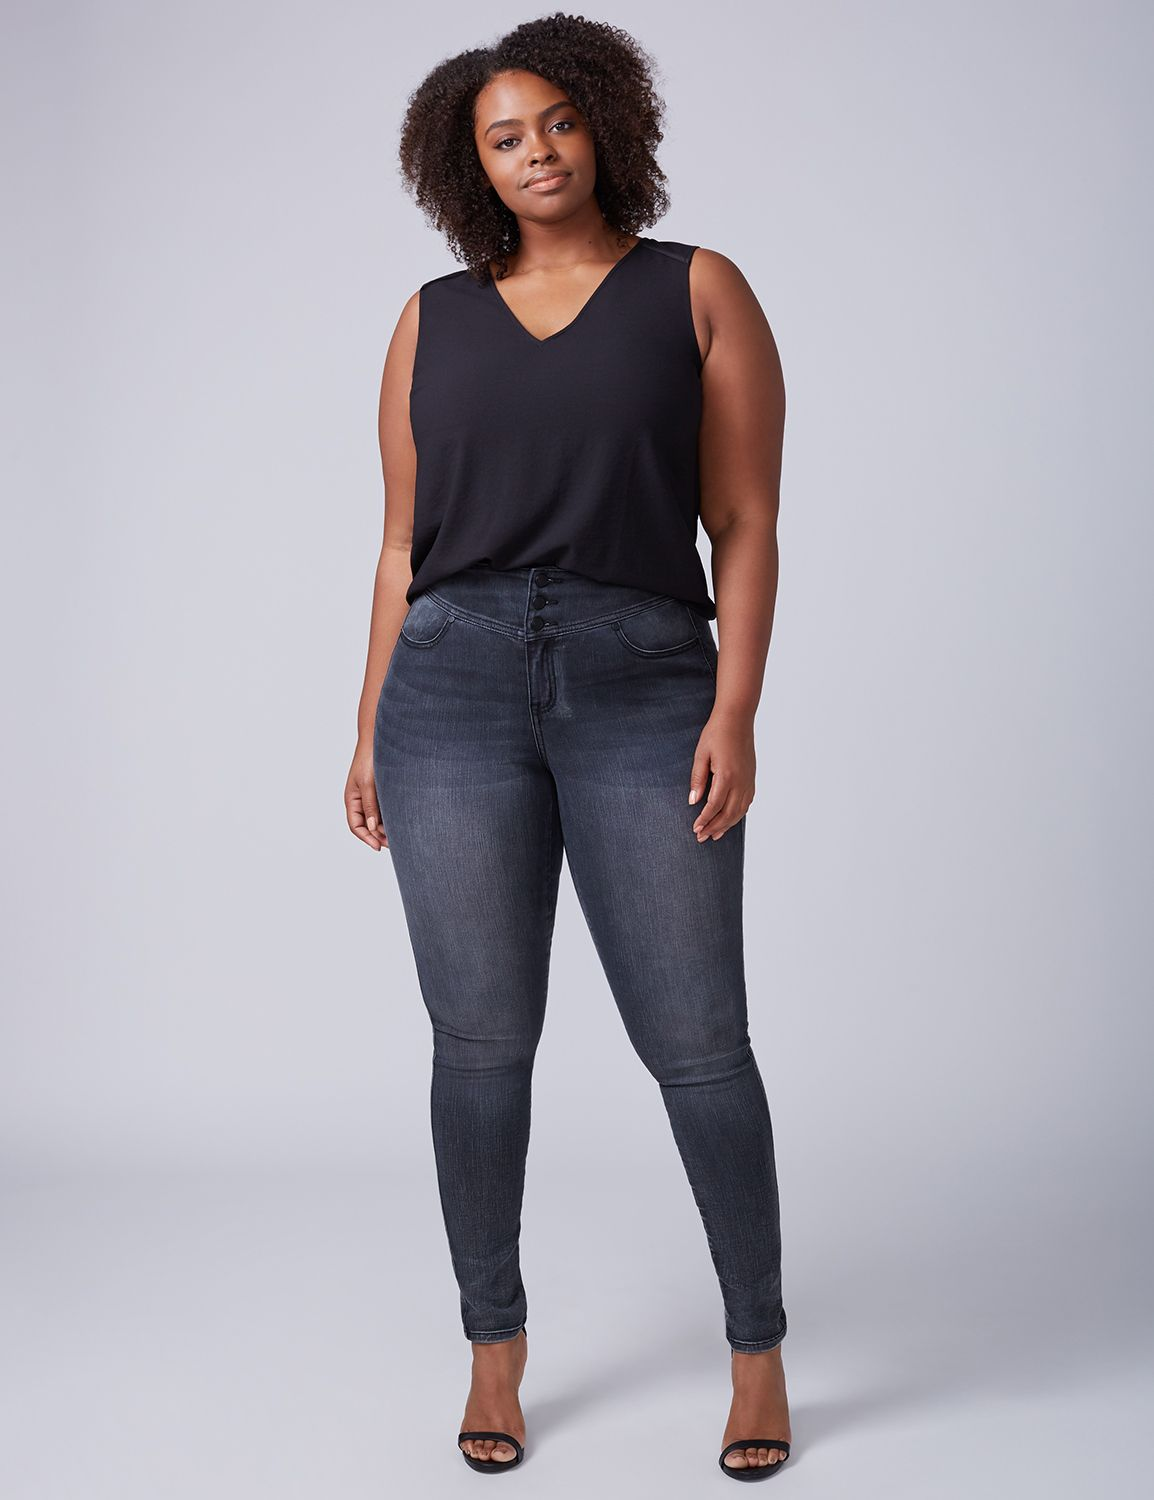 bryants store black girls personals When i went into lane bryant,  nice sales girl helping and my  specifically looking for one sweater and the store did not carry it you do not have black.